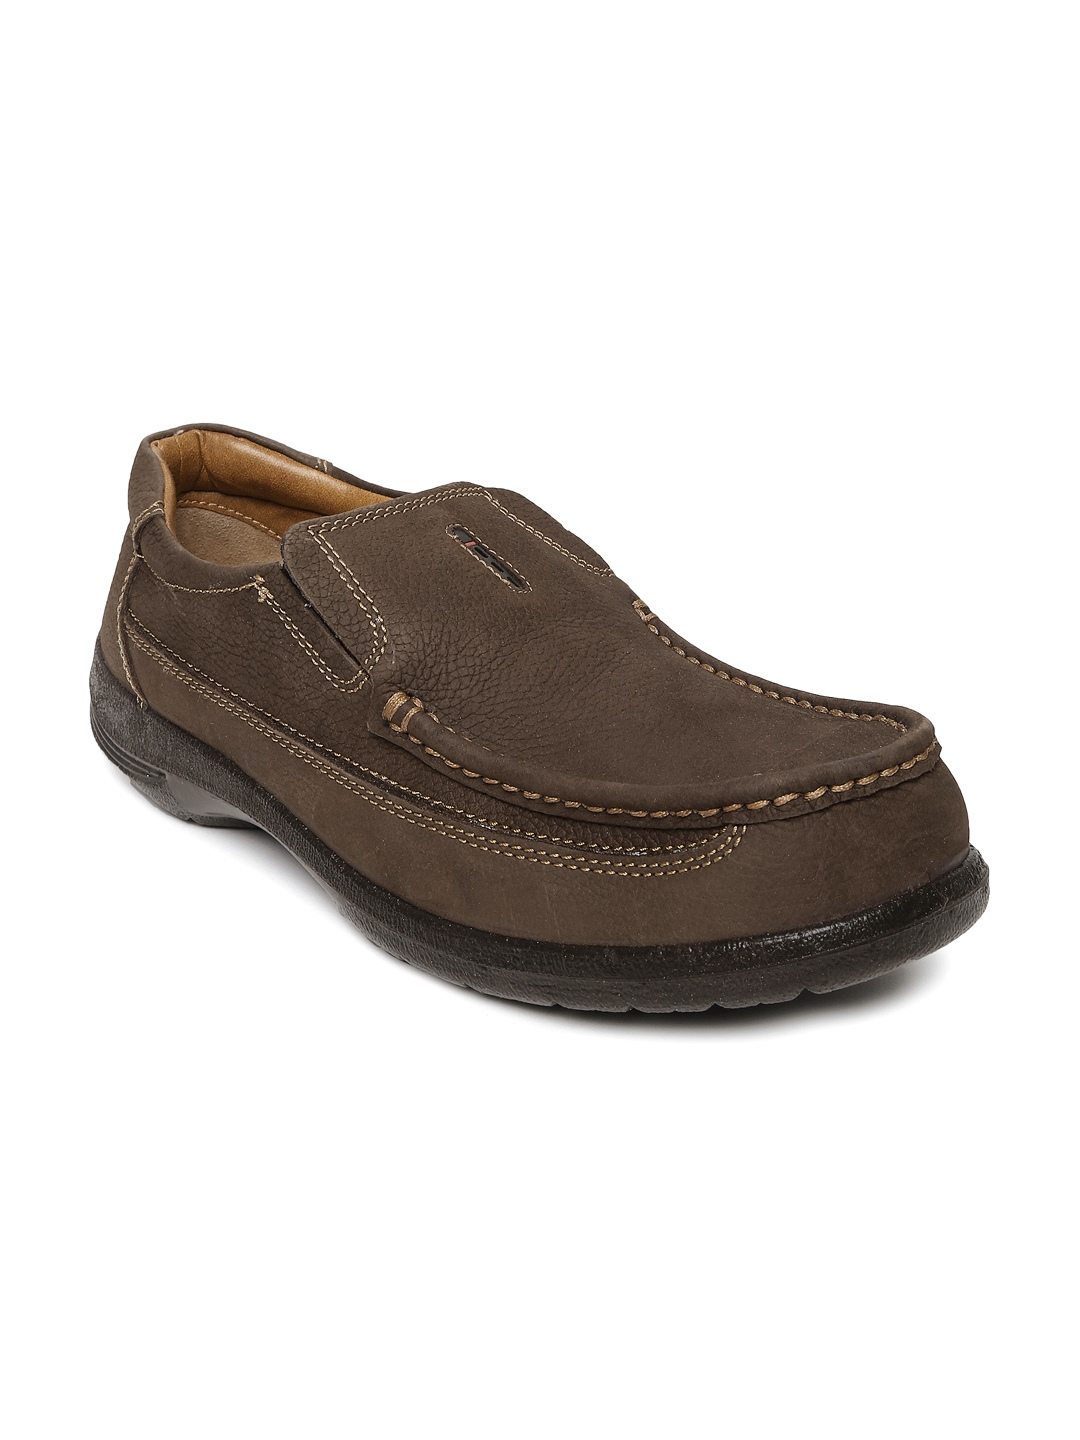 myntra bata brown leather casual shoes 775527